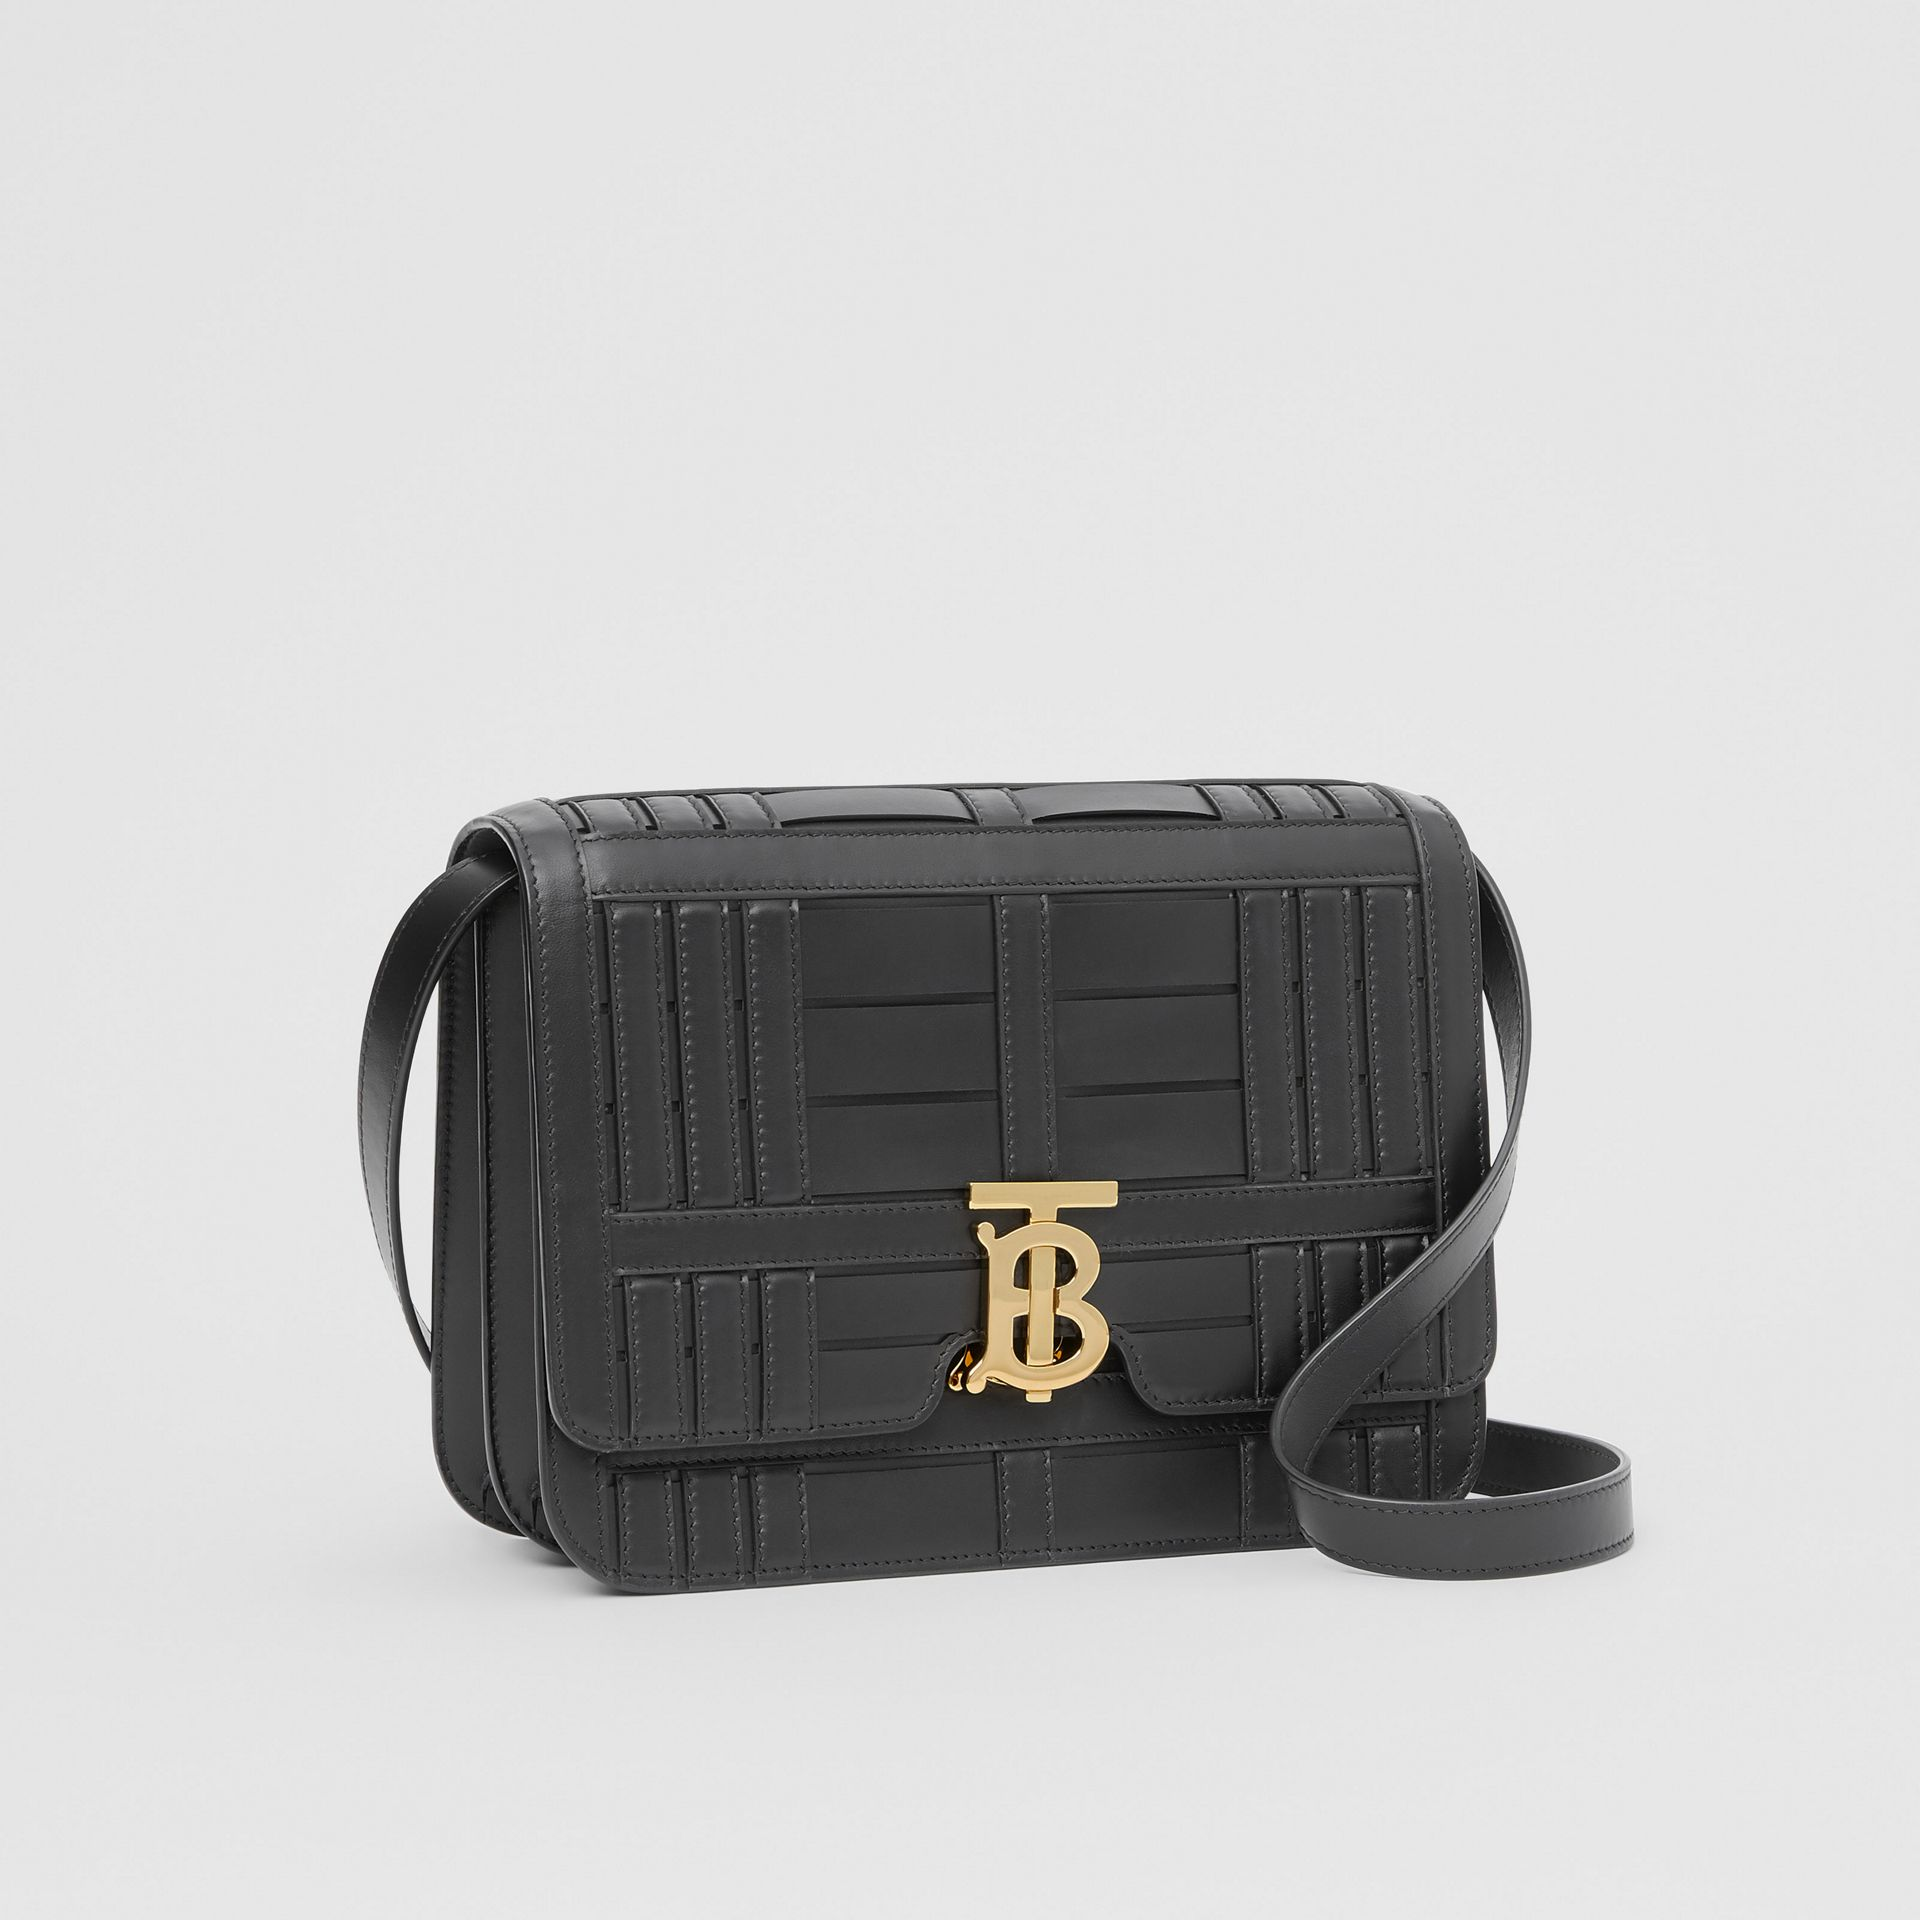 Medium Woven Leather TB Bag in Black - Women | Burberry Hong Kong S.A.R. - gallery image 6